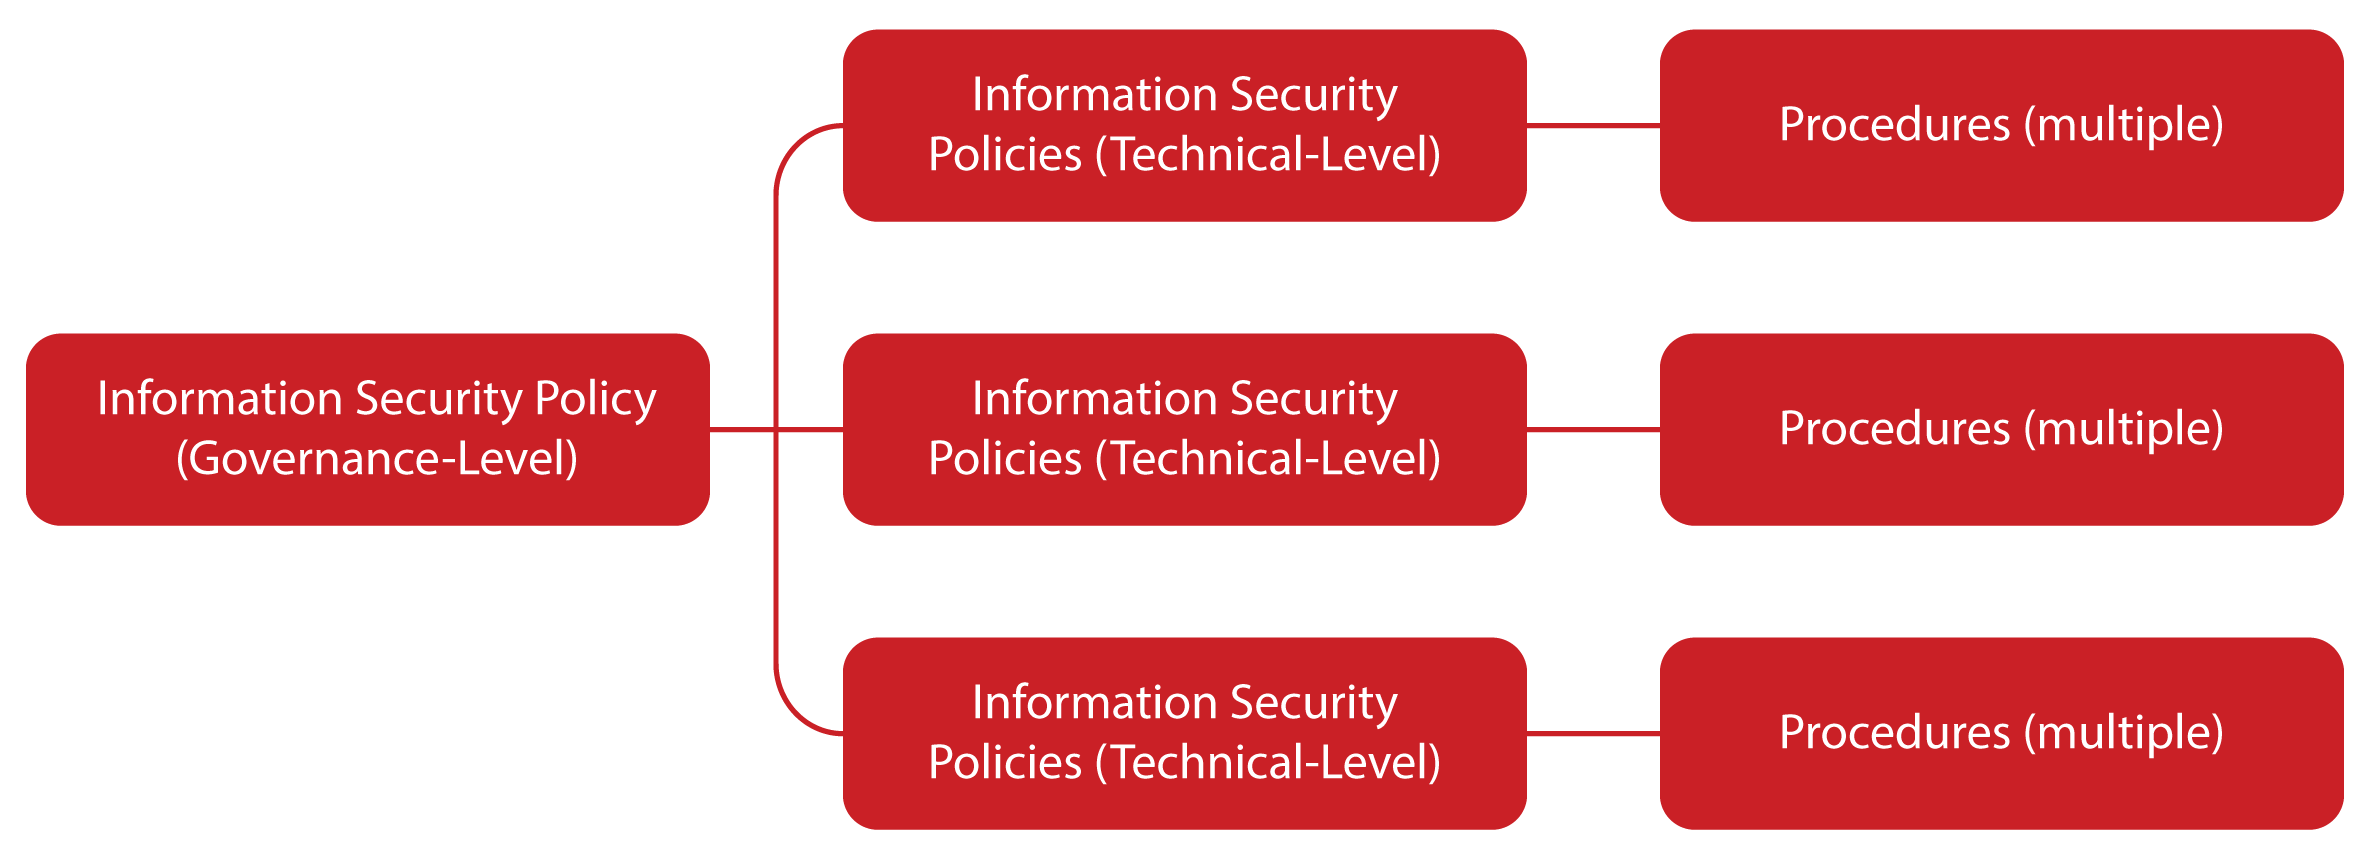 information-security-privacy-policy-ikram